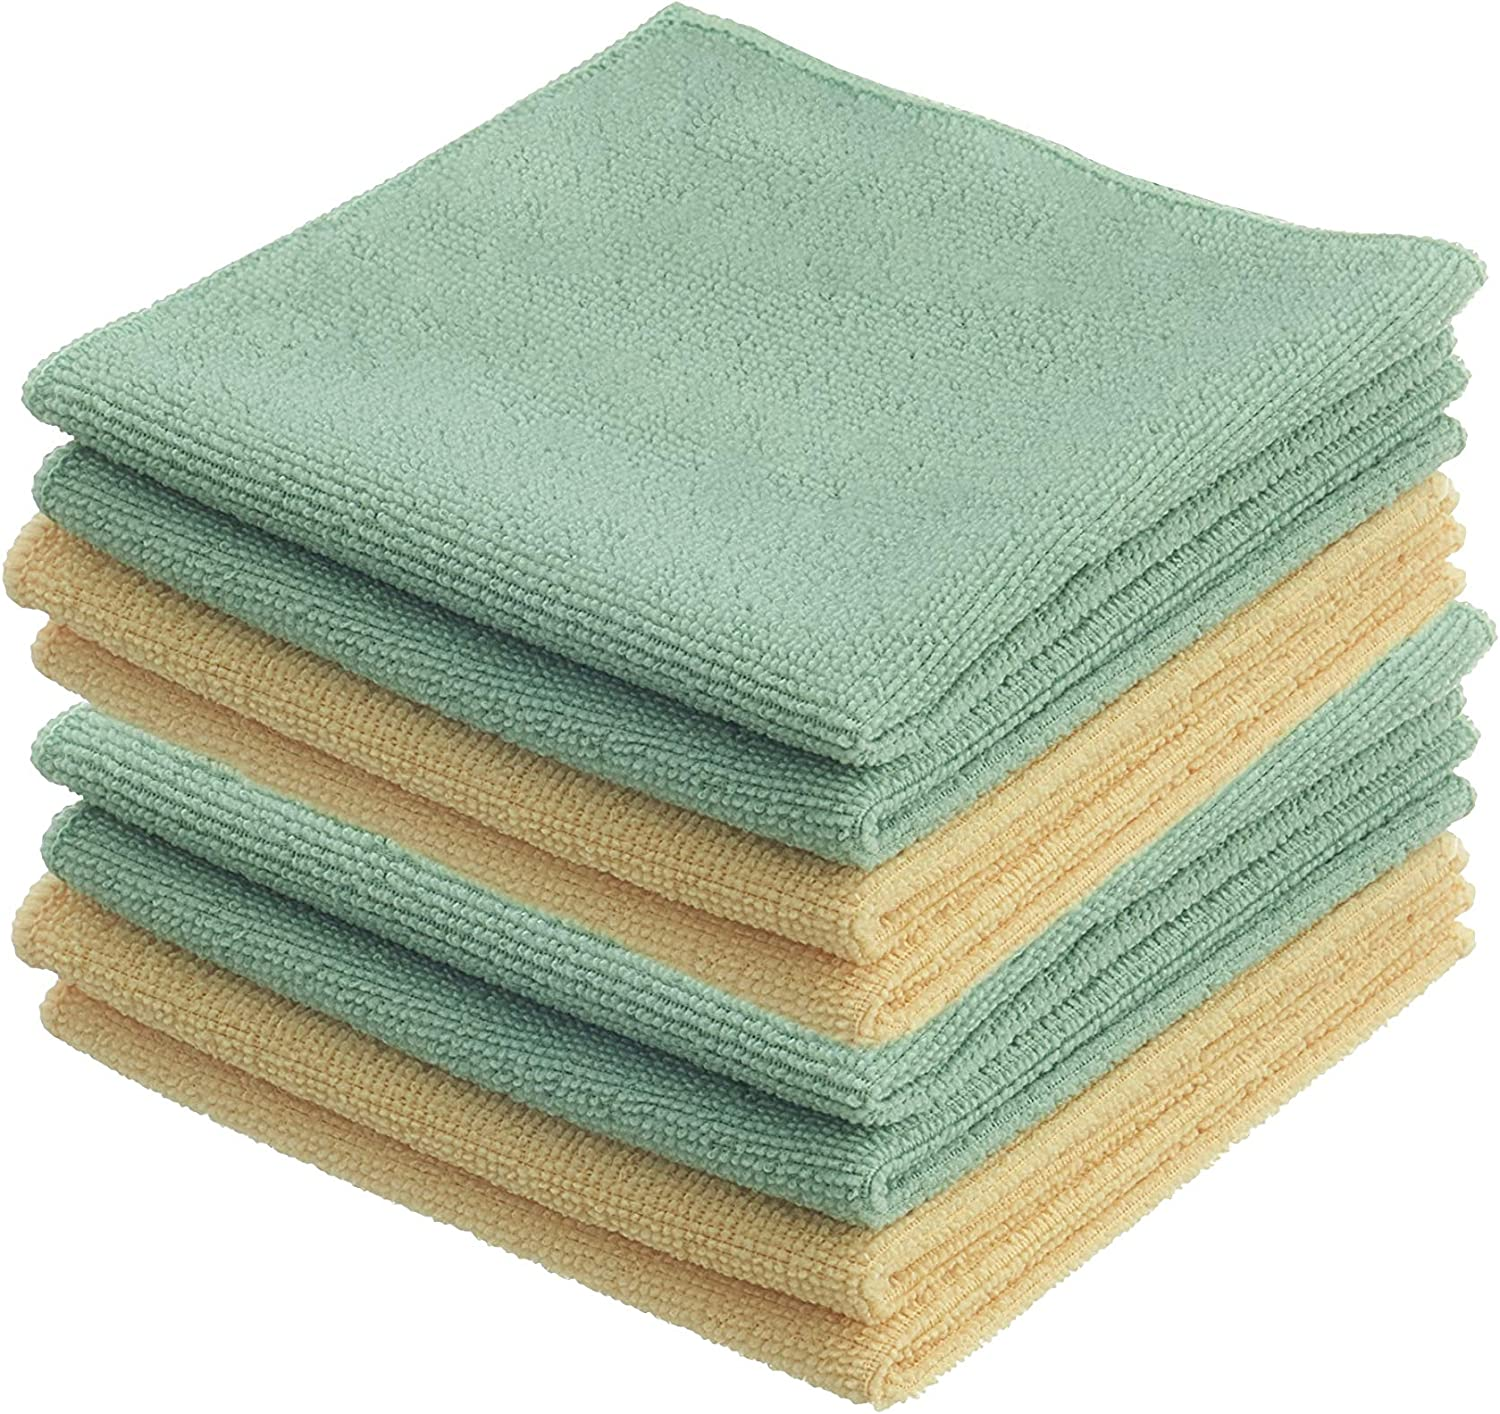 Superio Microfiber Cloths for Cleaning 12 Inch Towels (8 Pack) Ultra Micro Fiber Yellow/Green Washing Cloths, Auto, Home, Office, Kitchen Dish Wash Dust Cloths Glass Sparkle, Scratch Free